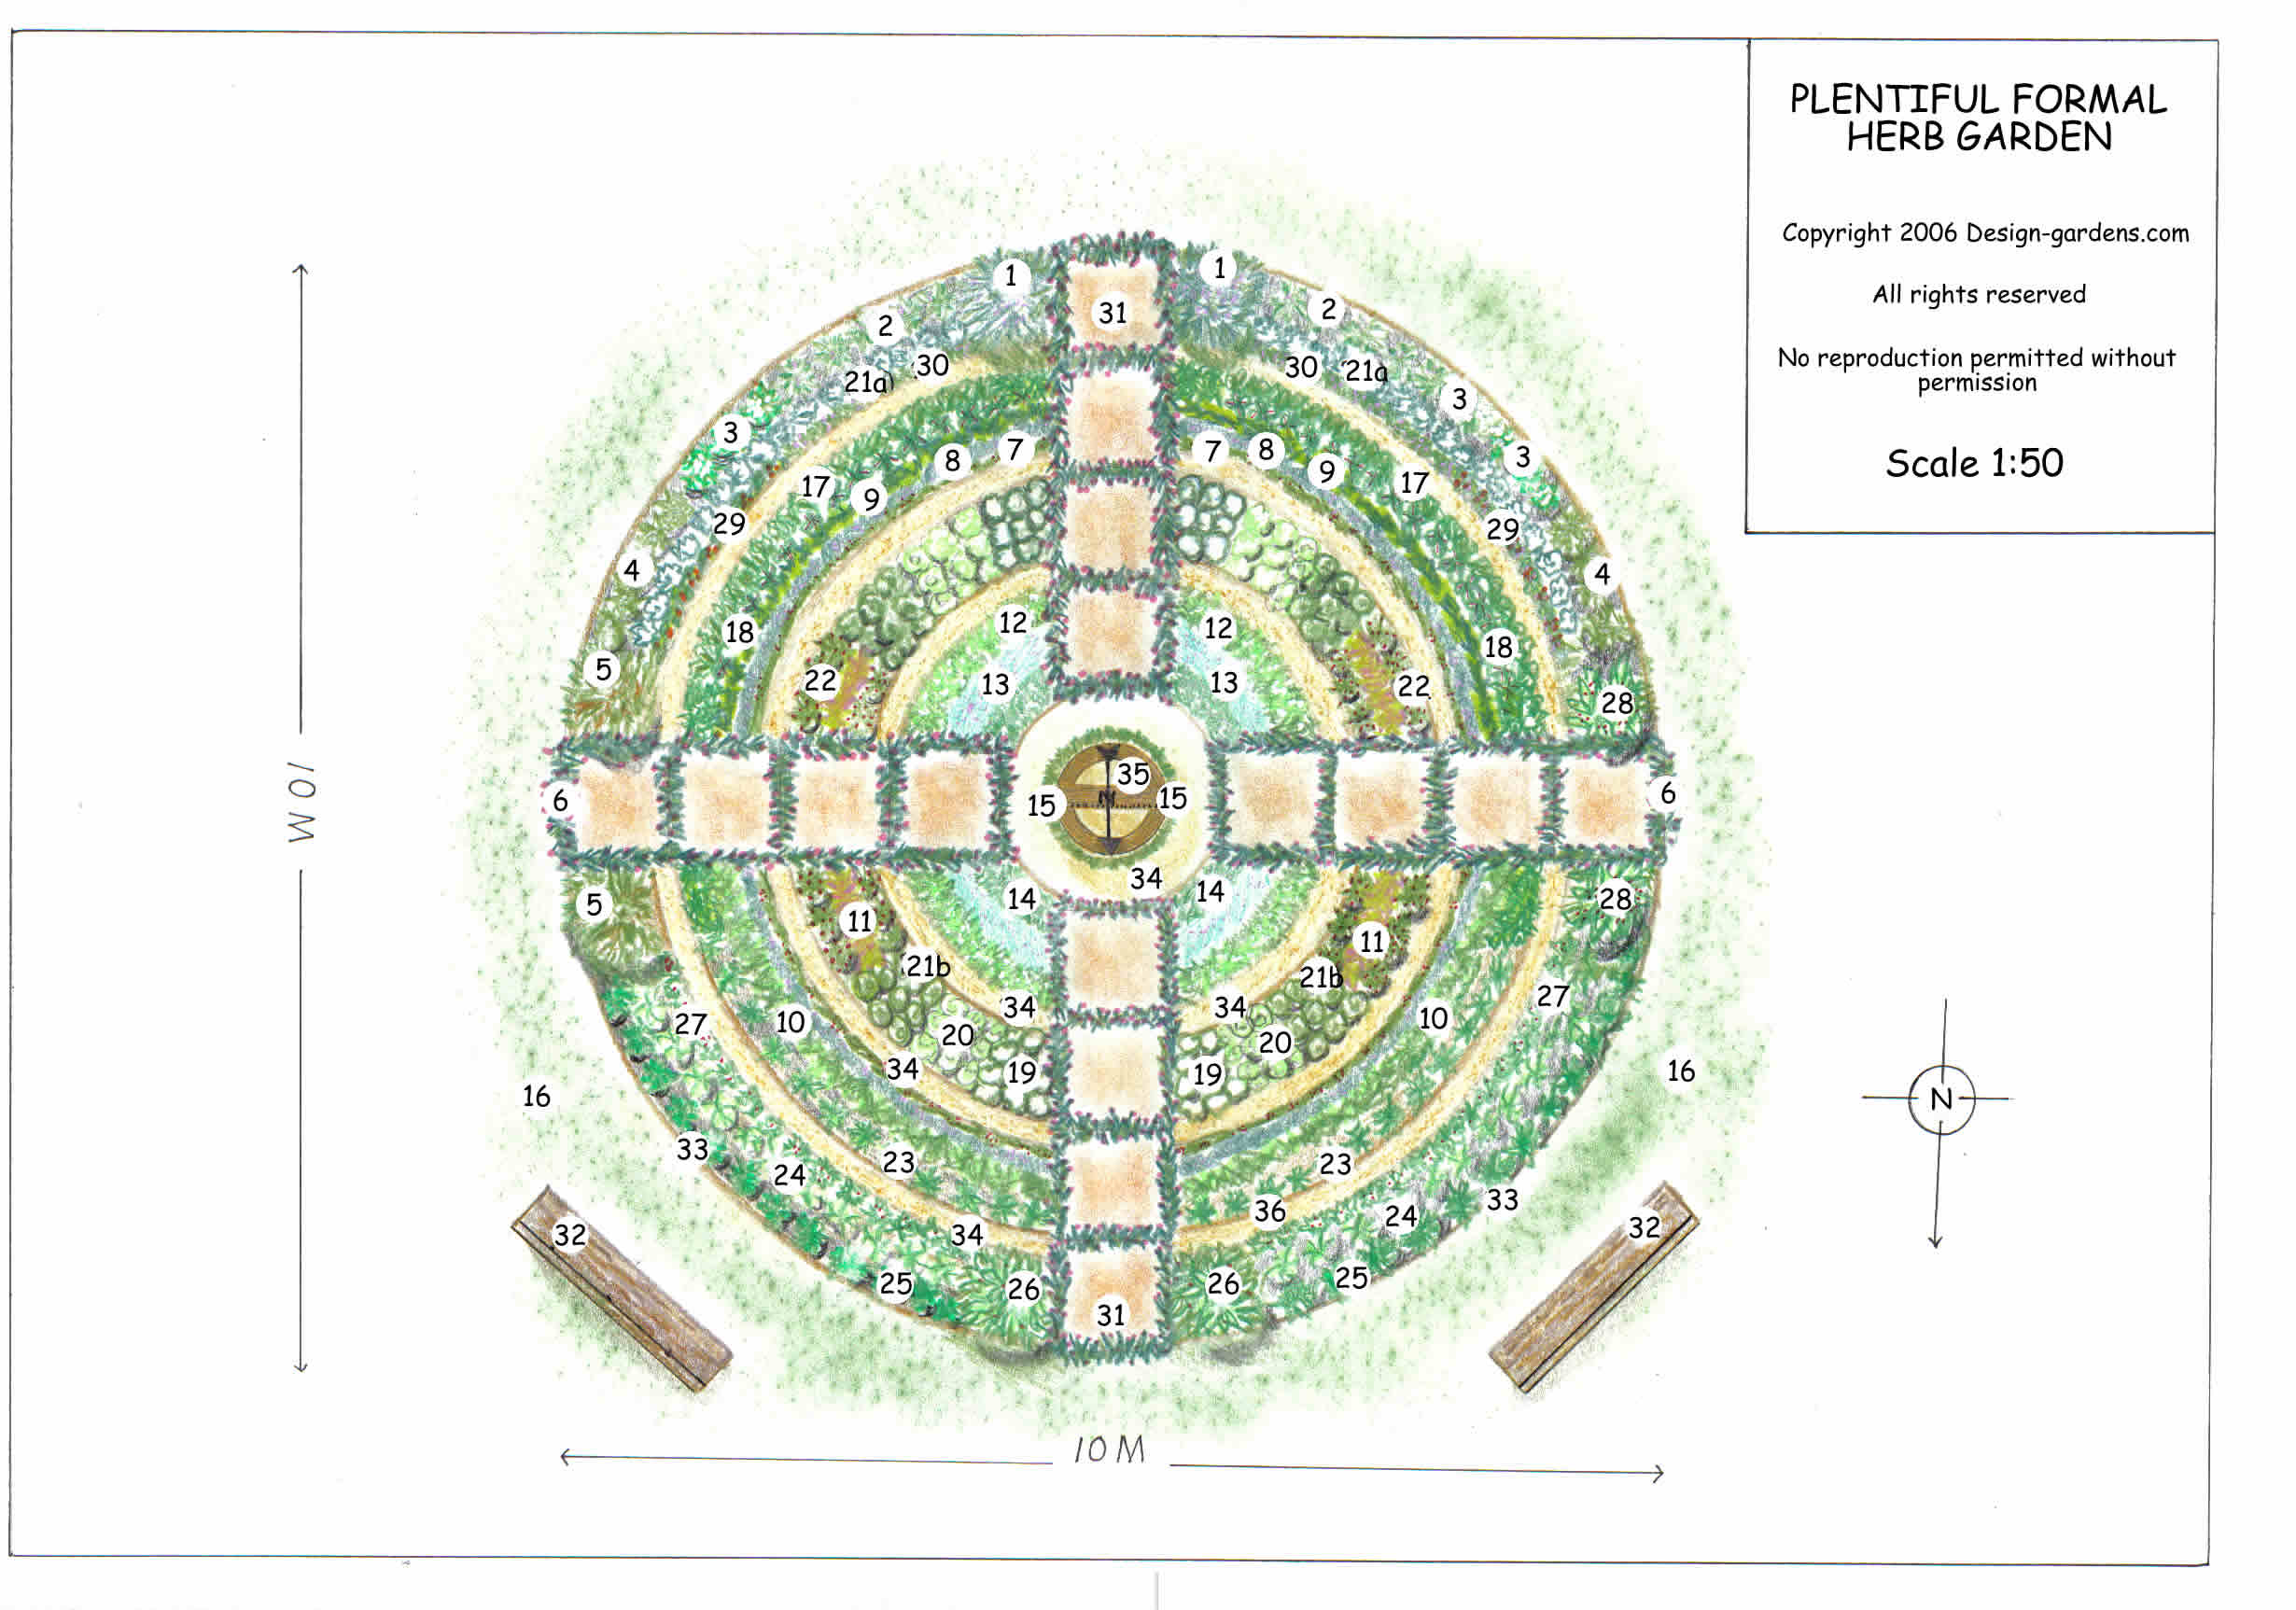 Fabulous Herb Garden Design Plans Free 2460 x 1725 · 229 kB · jpeg